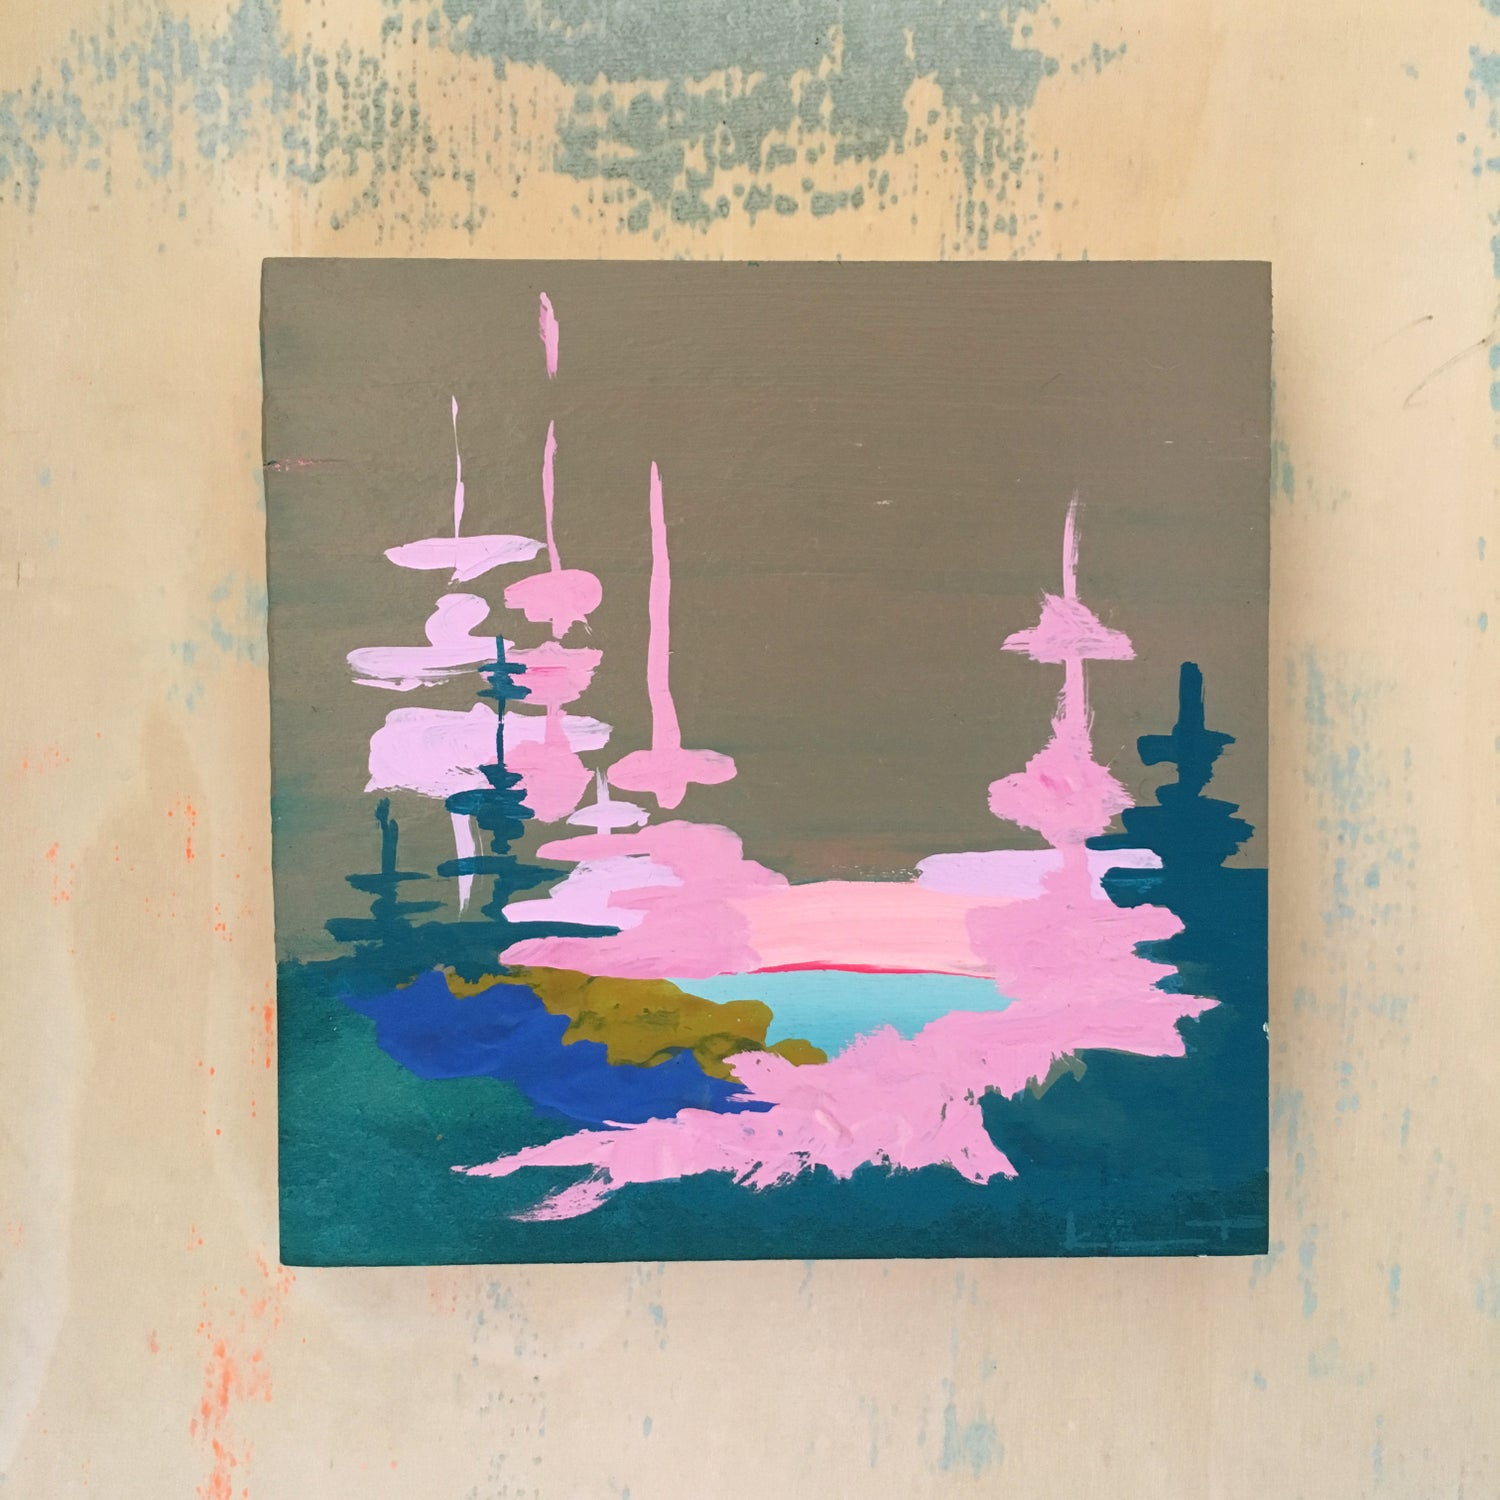 Image of Tiny Painting No. 64 (cement, lilac, marine)